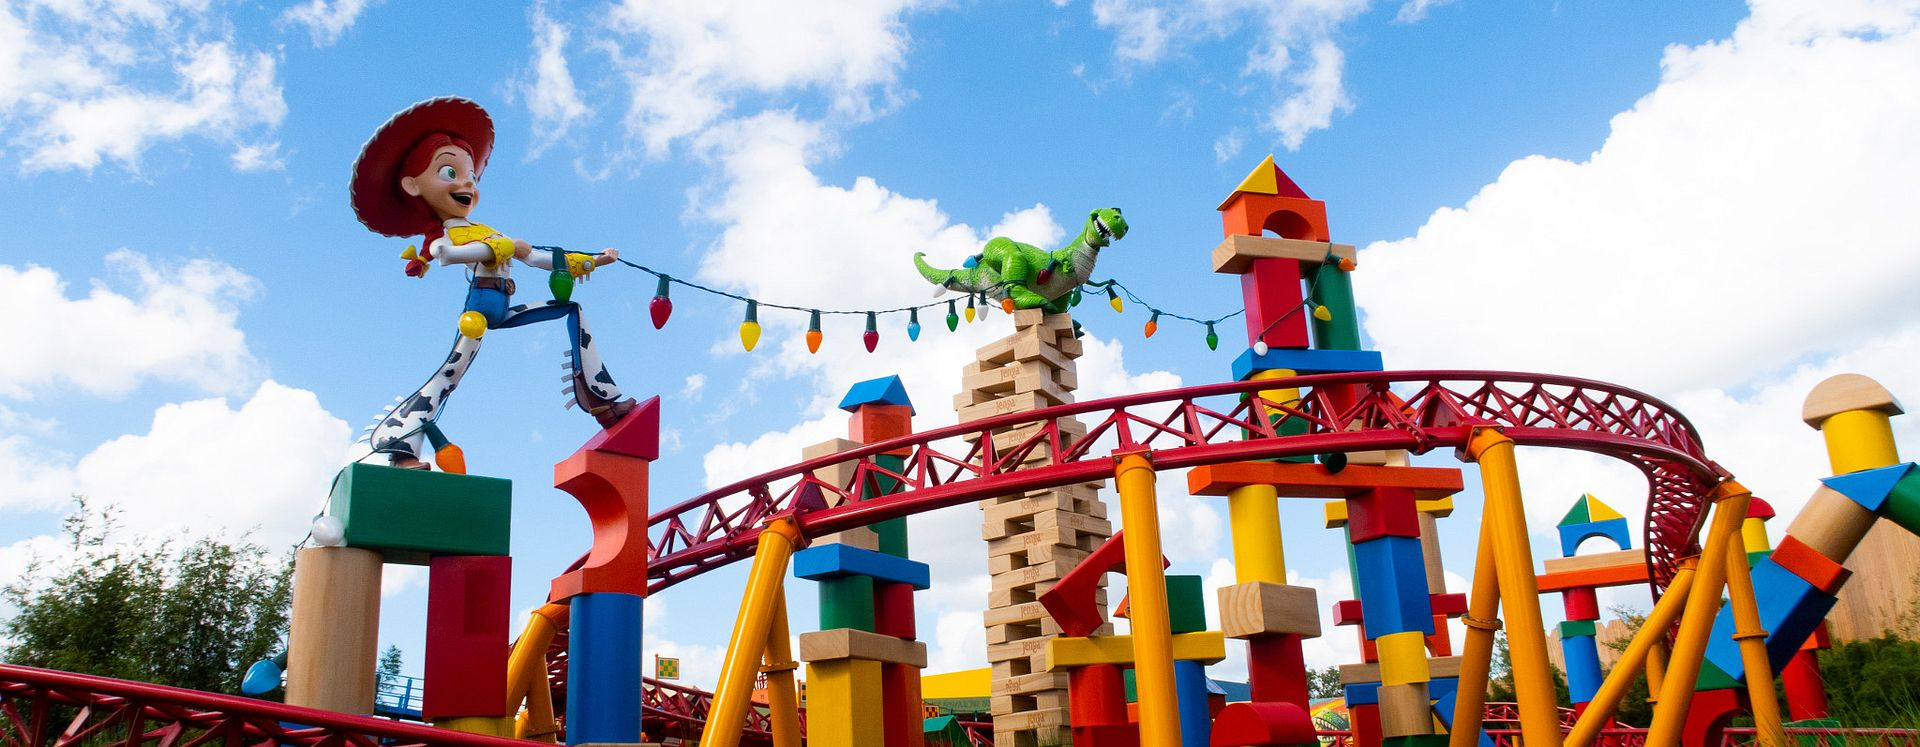 Jessie's rollercoaster at Toy Story Land in Disney's Hollywood Studios